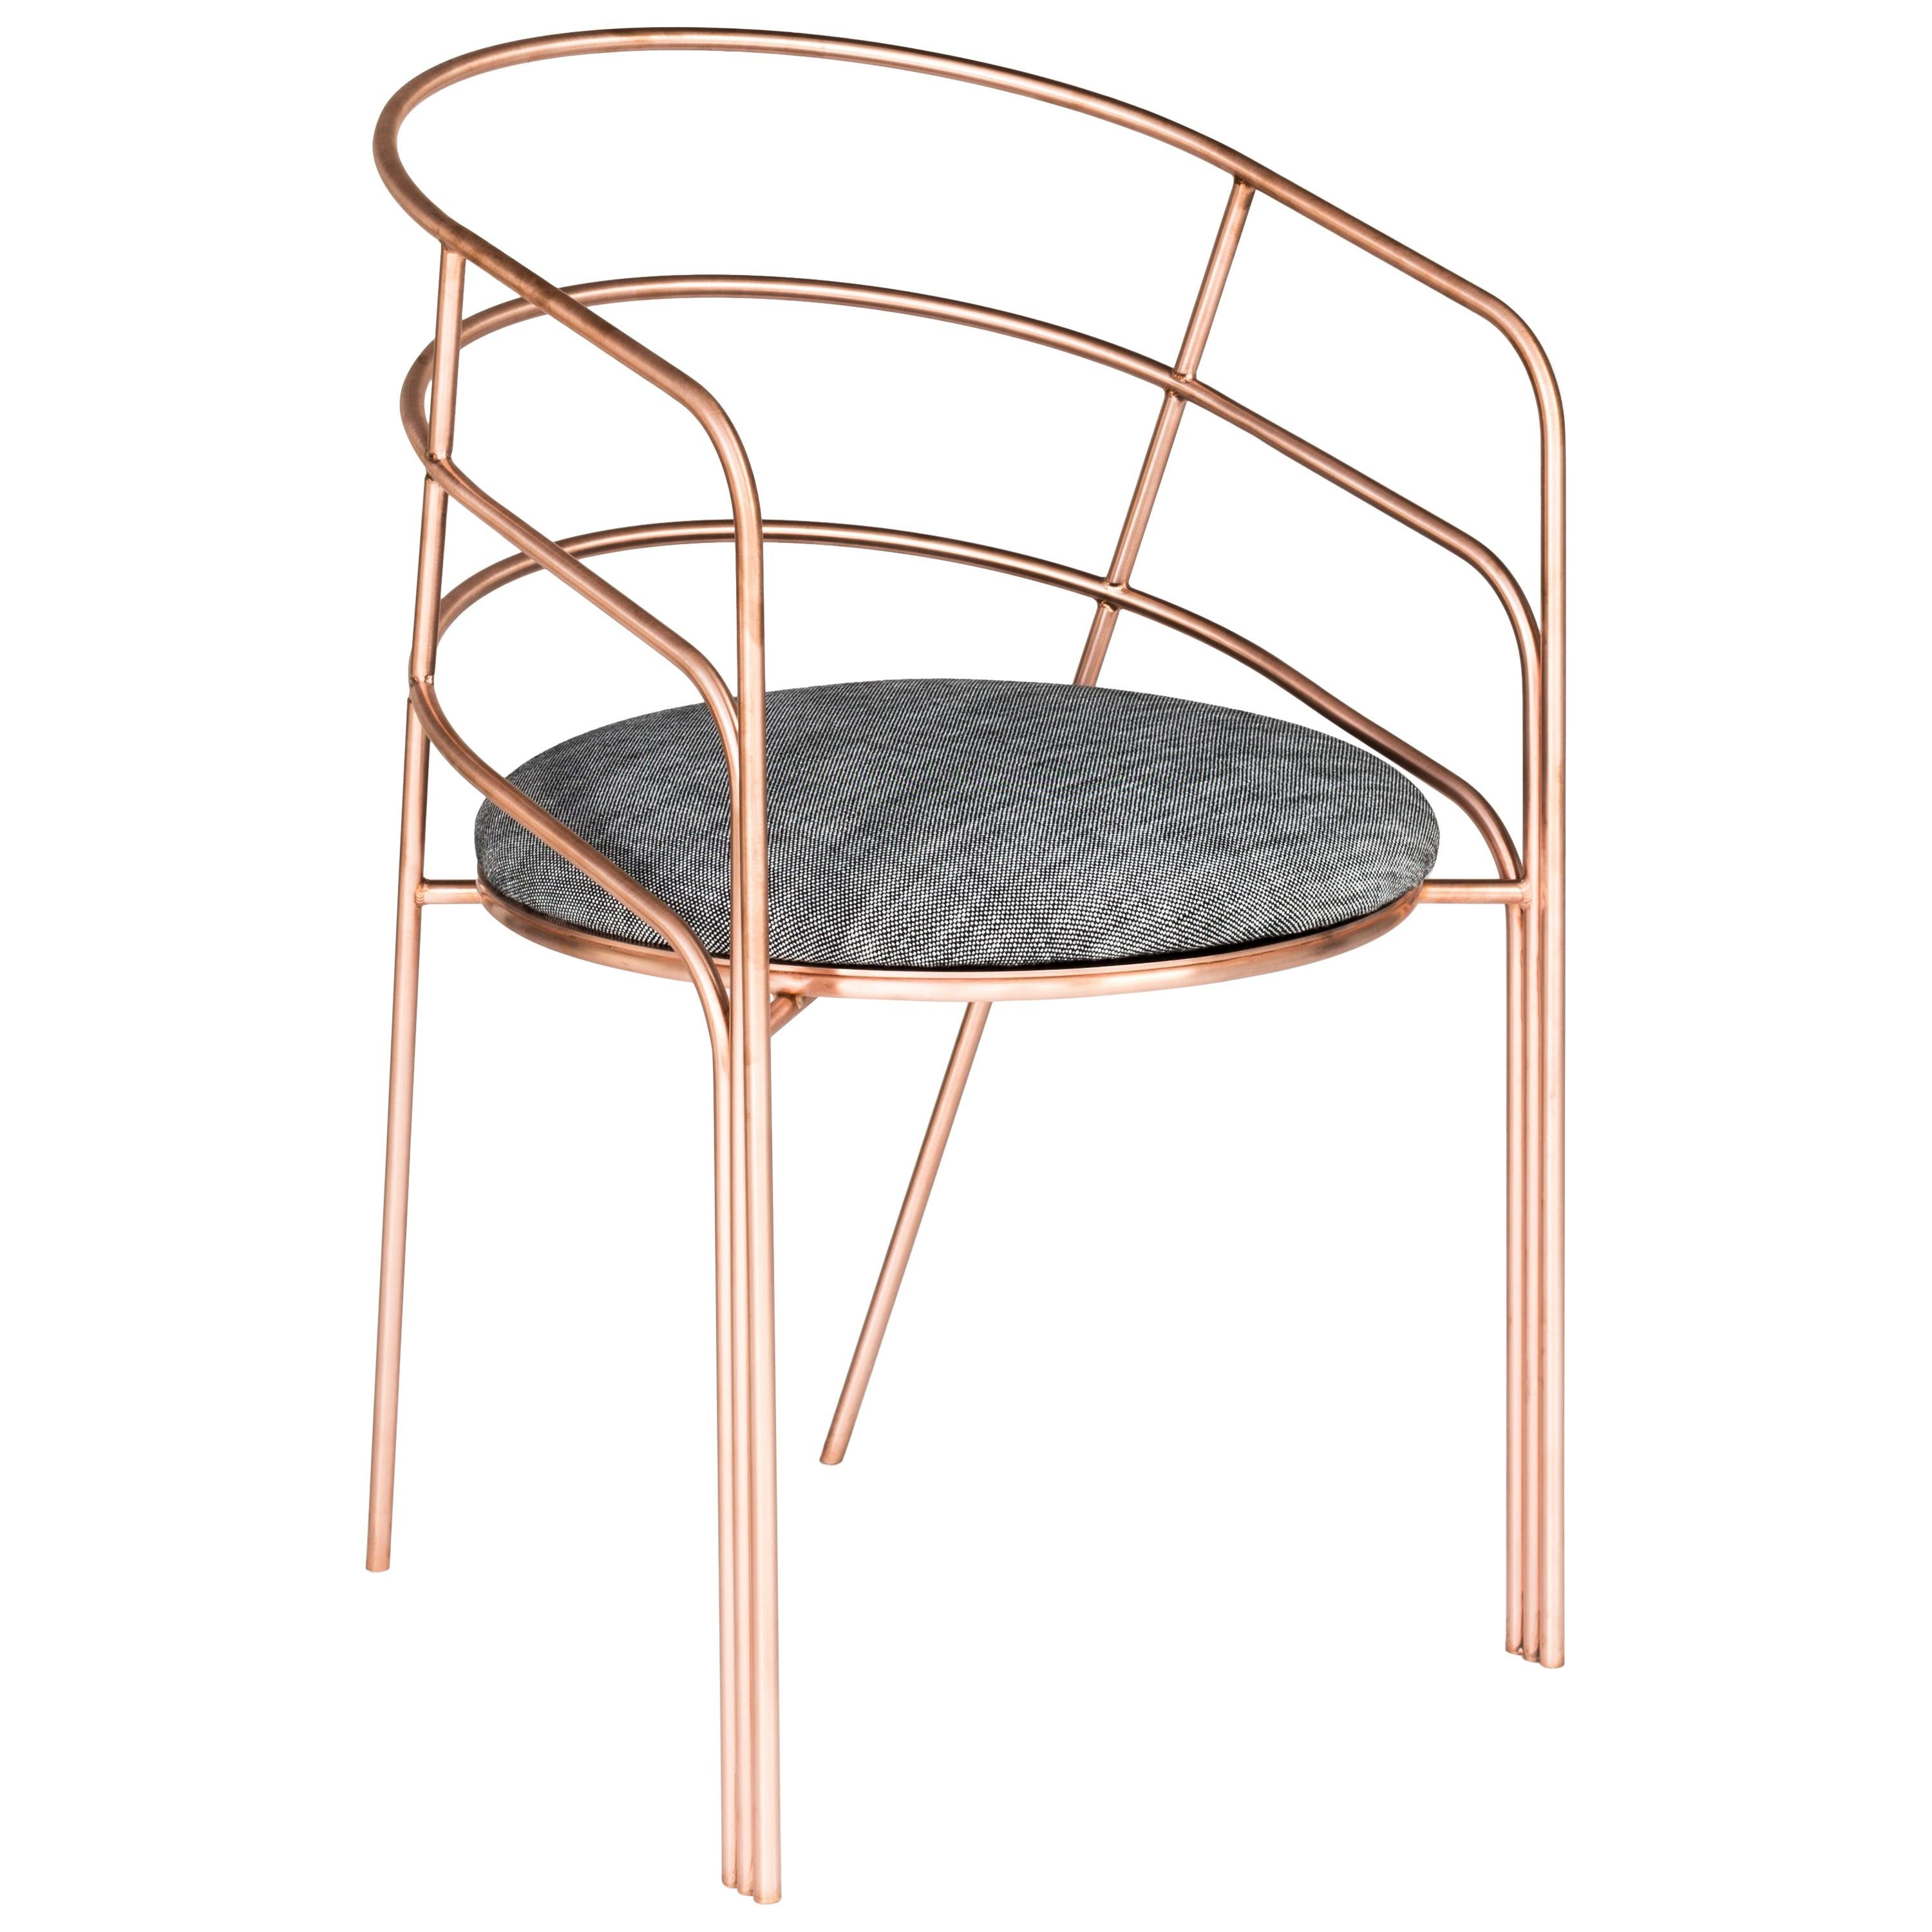 DeMille, Indoor/Outdoor Copper-Plated Stainless Steel Dining Chair by Laun